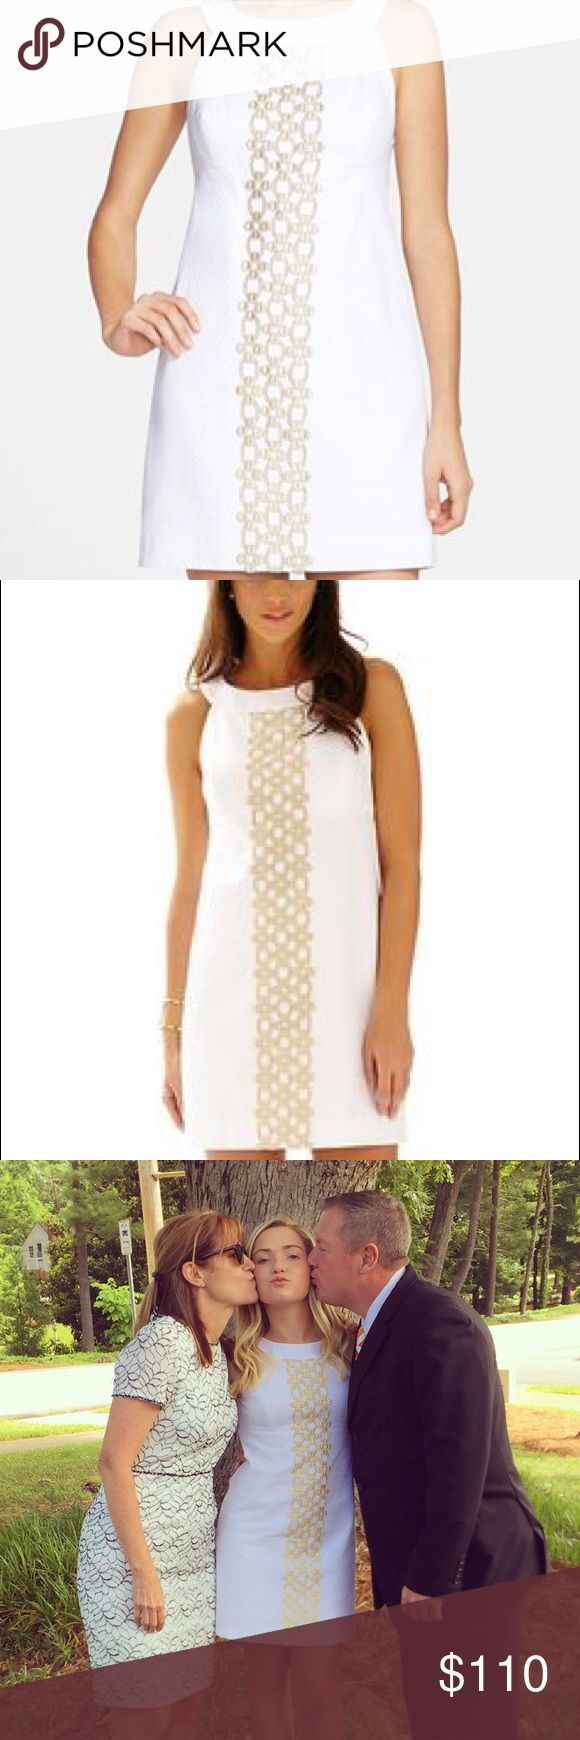 Lilly Pulitzer Jacqueline shift dress white/gold A-line shift dress beautiful detail and amazing white dress to have, fits perfectly, literally worn one time for my graduation, size 2, open to offers Lilly Pulitzer Dresses